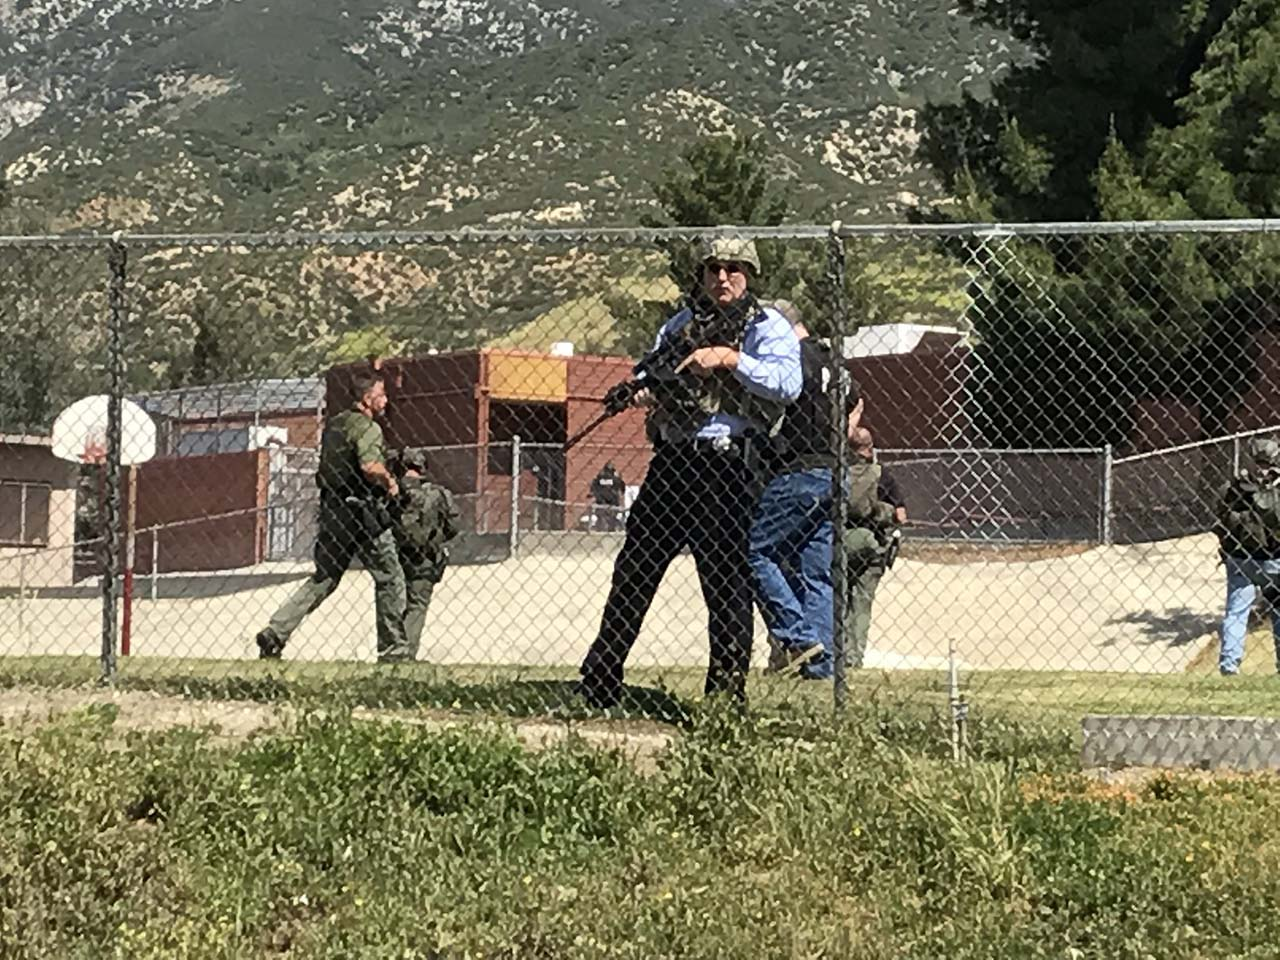 "<div class=""meta image-caption""><div class=""origin-logo origin-image none""><span>none</span></div><span class=""caption-text"">Police lined the perimeter of North Park elementary following a shooting inside a classroom. (Photo/Rick Sforza with Southern California News Group)</span></div>"